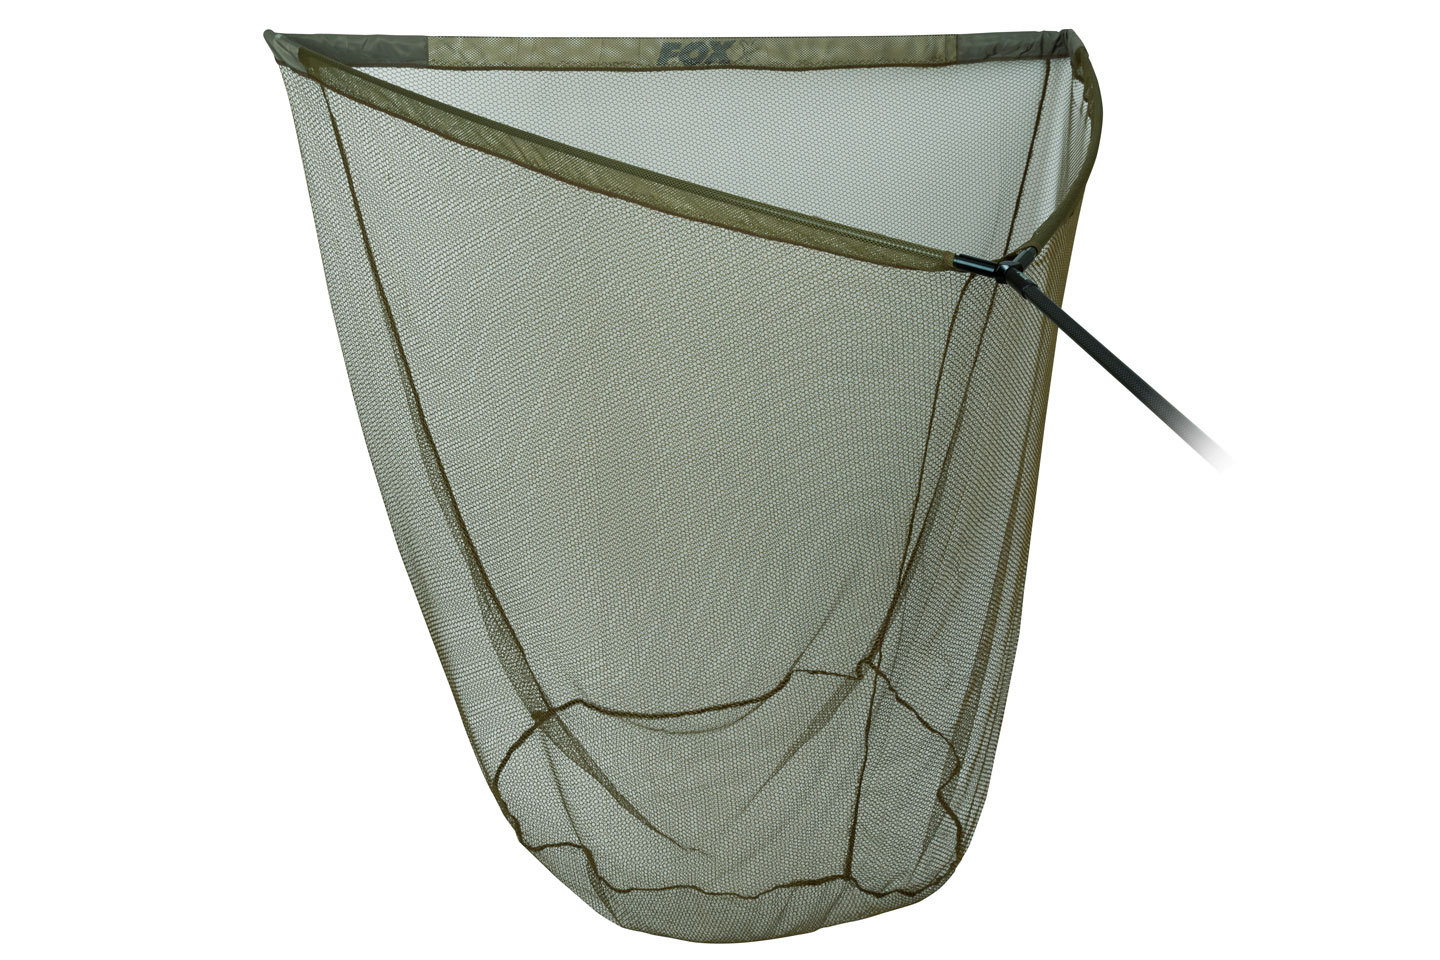 horizon-x4-46in-landing-net_maingif